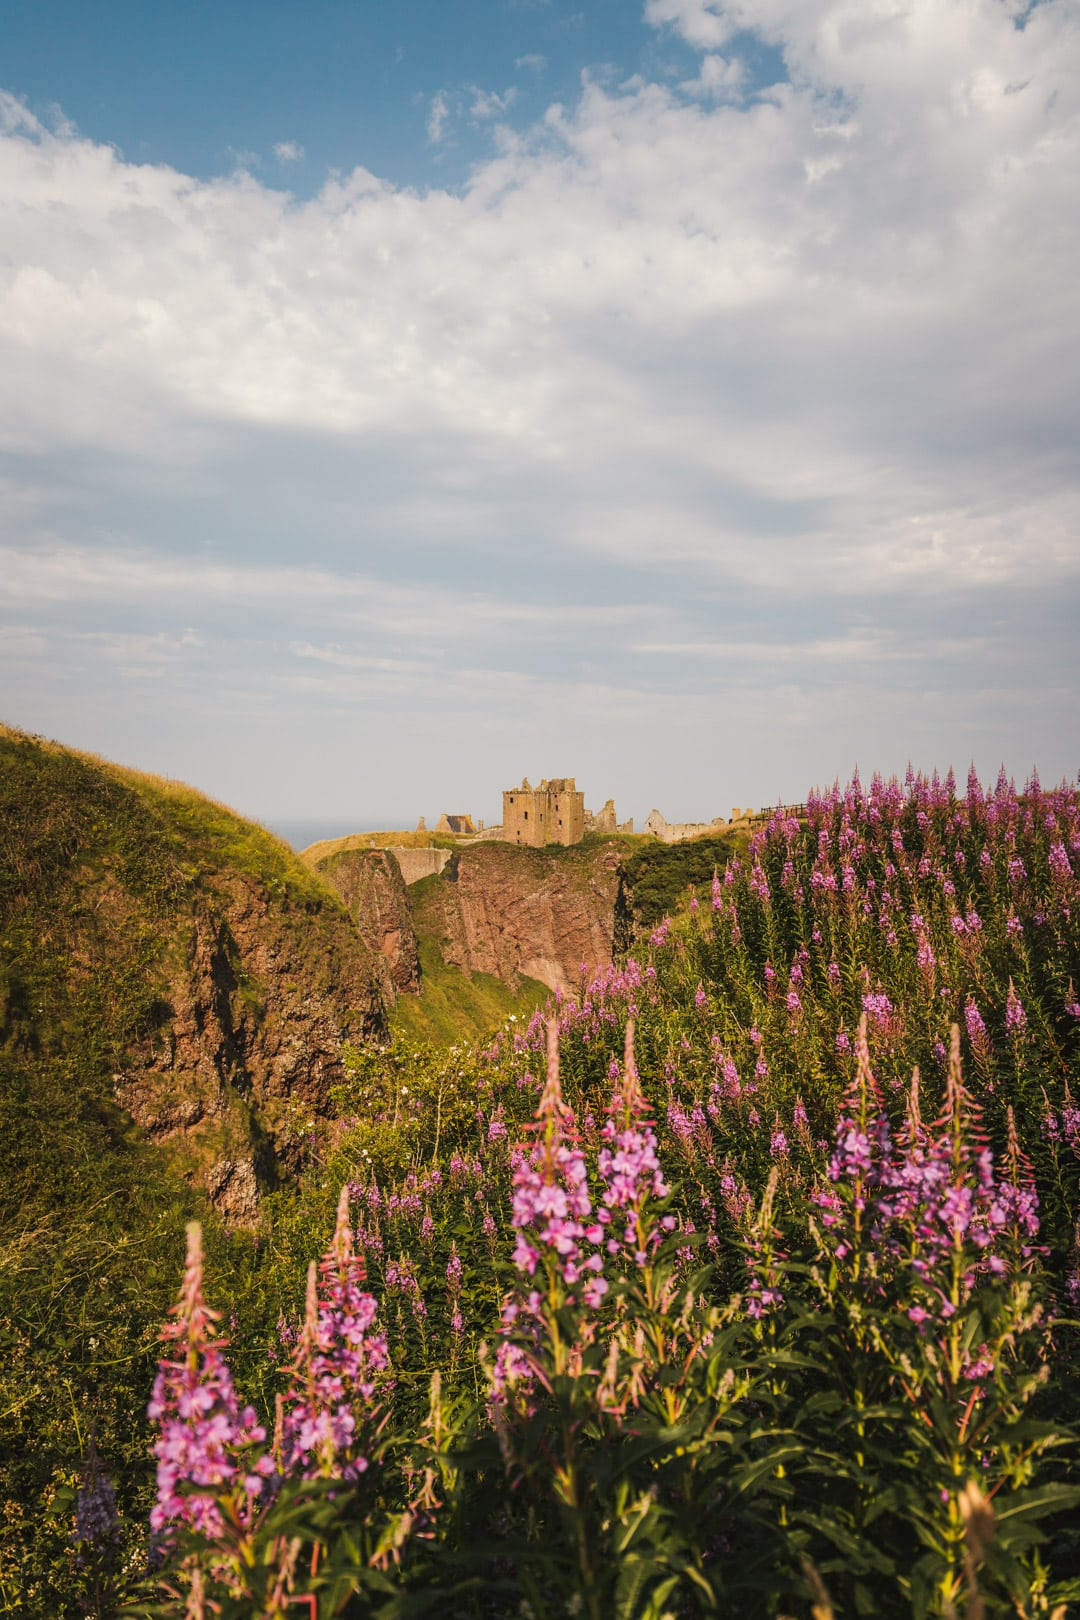 dunnottar castle in scotland united kingdom, instagrammable places in scotland